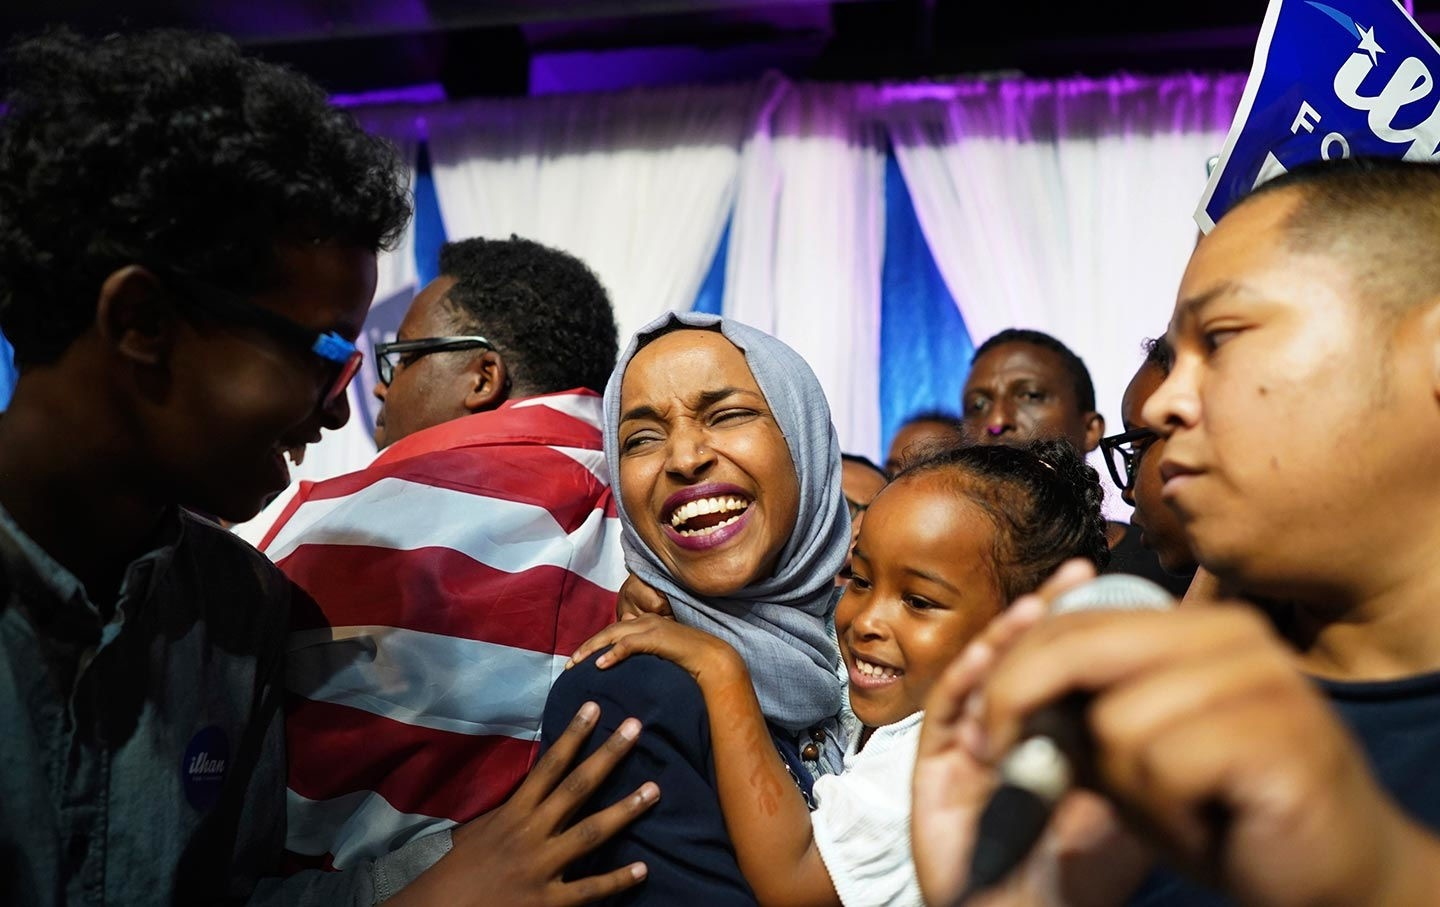 Ilhan Omar, the first Somali-American member of the Congress, celebrates with her children after her victory in Minnesotau2019s Fifth Congressional District in the midterm elections, Aug. 14.